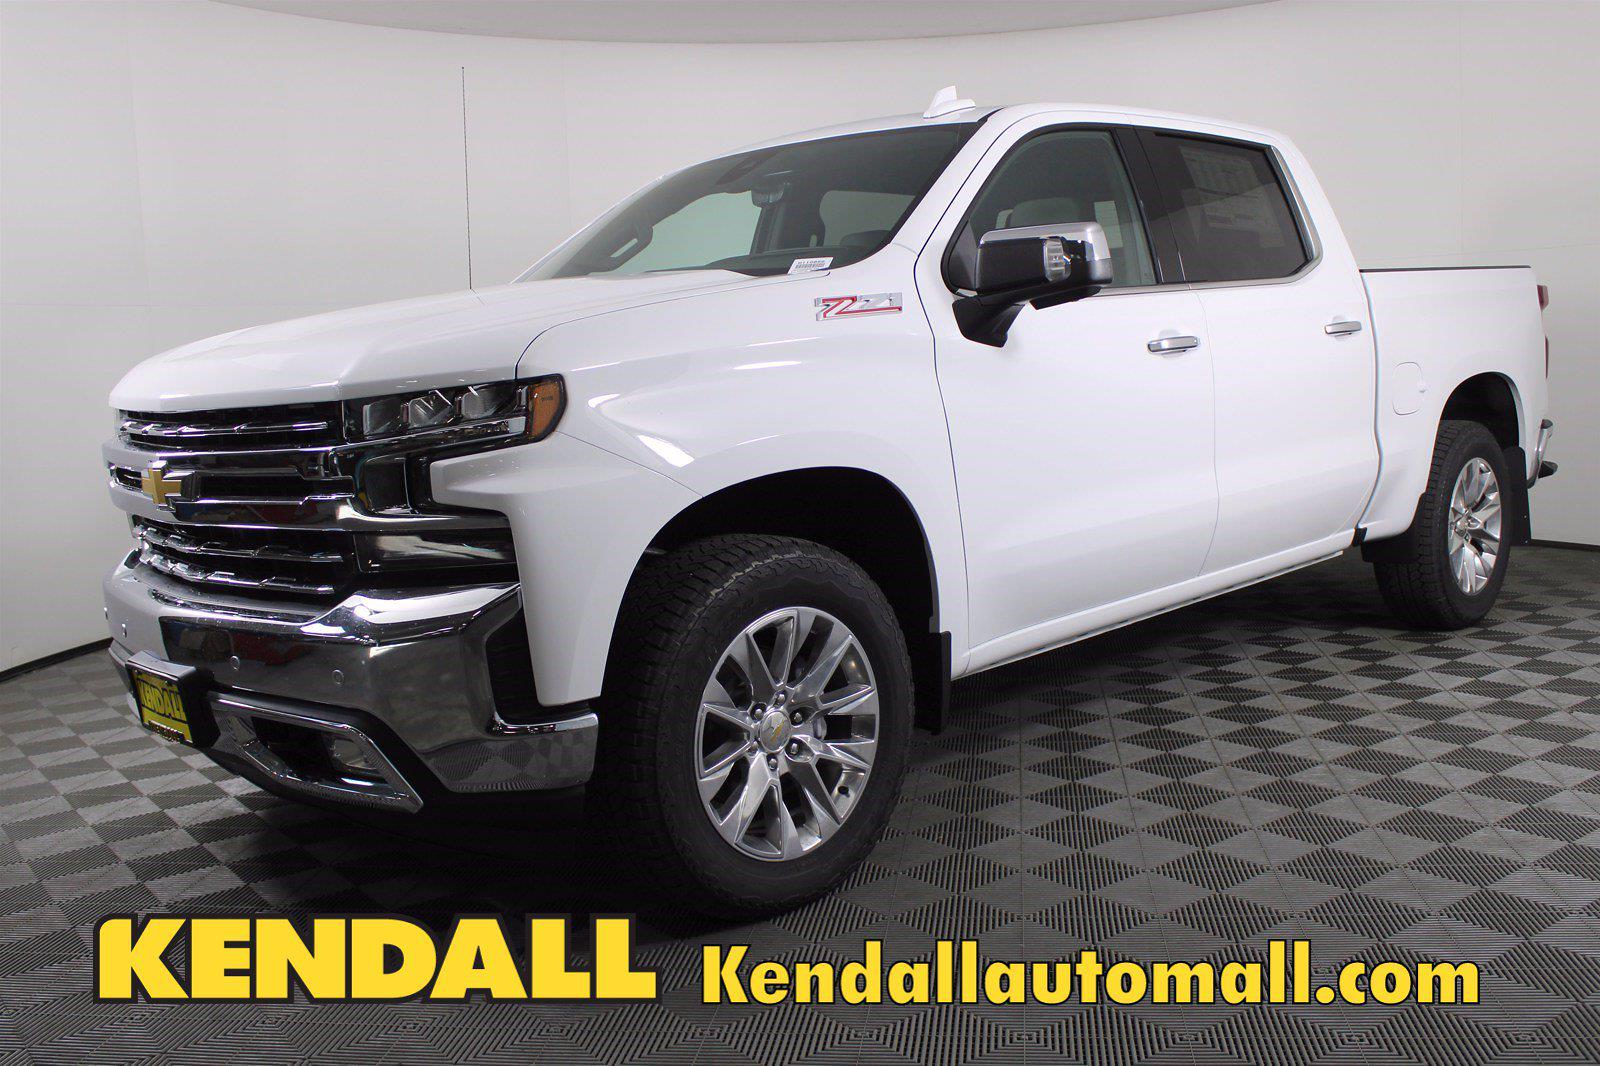 2021 Chevrolet Silverado 1500 Crew Cab 4x4, Pickup #D110856 - photo 1